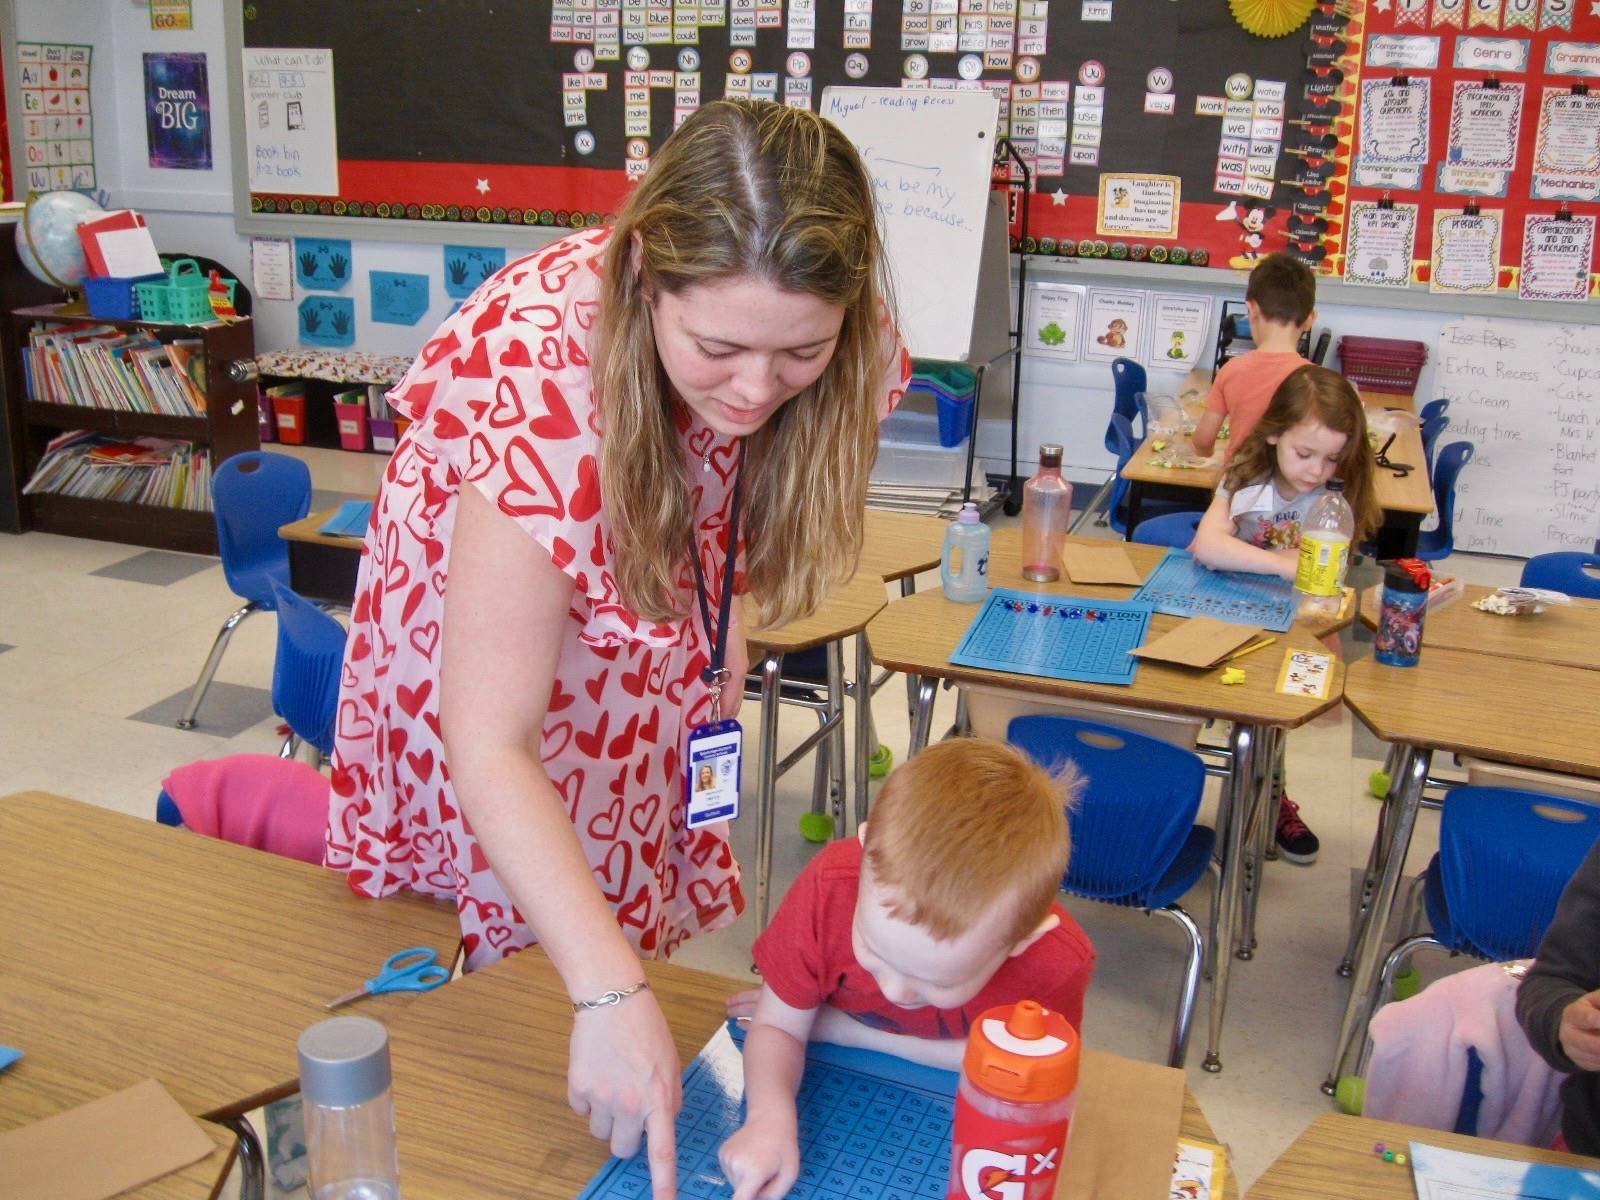 A teacher helps a student count 100 items.